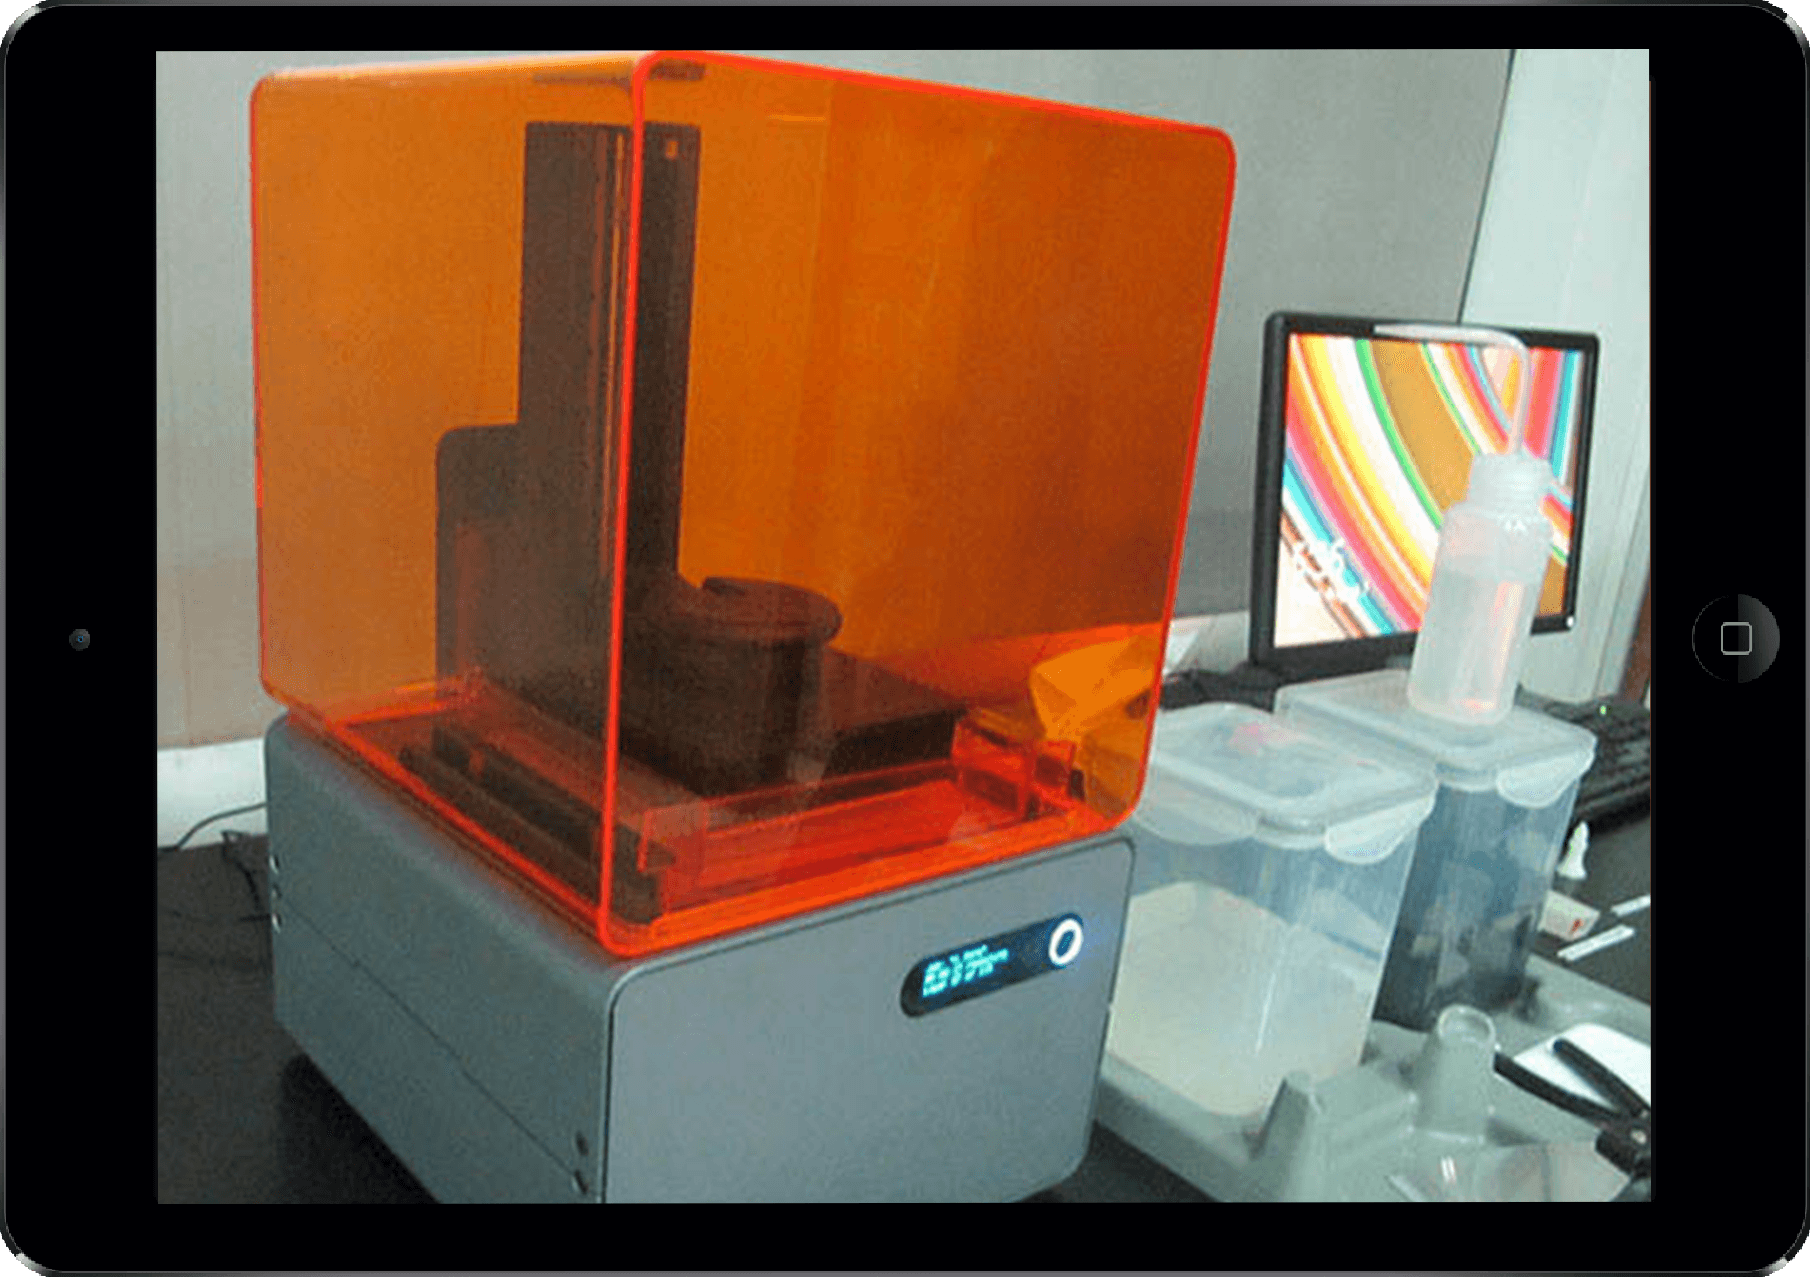 formlabs 3d printer software